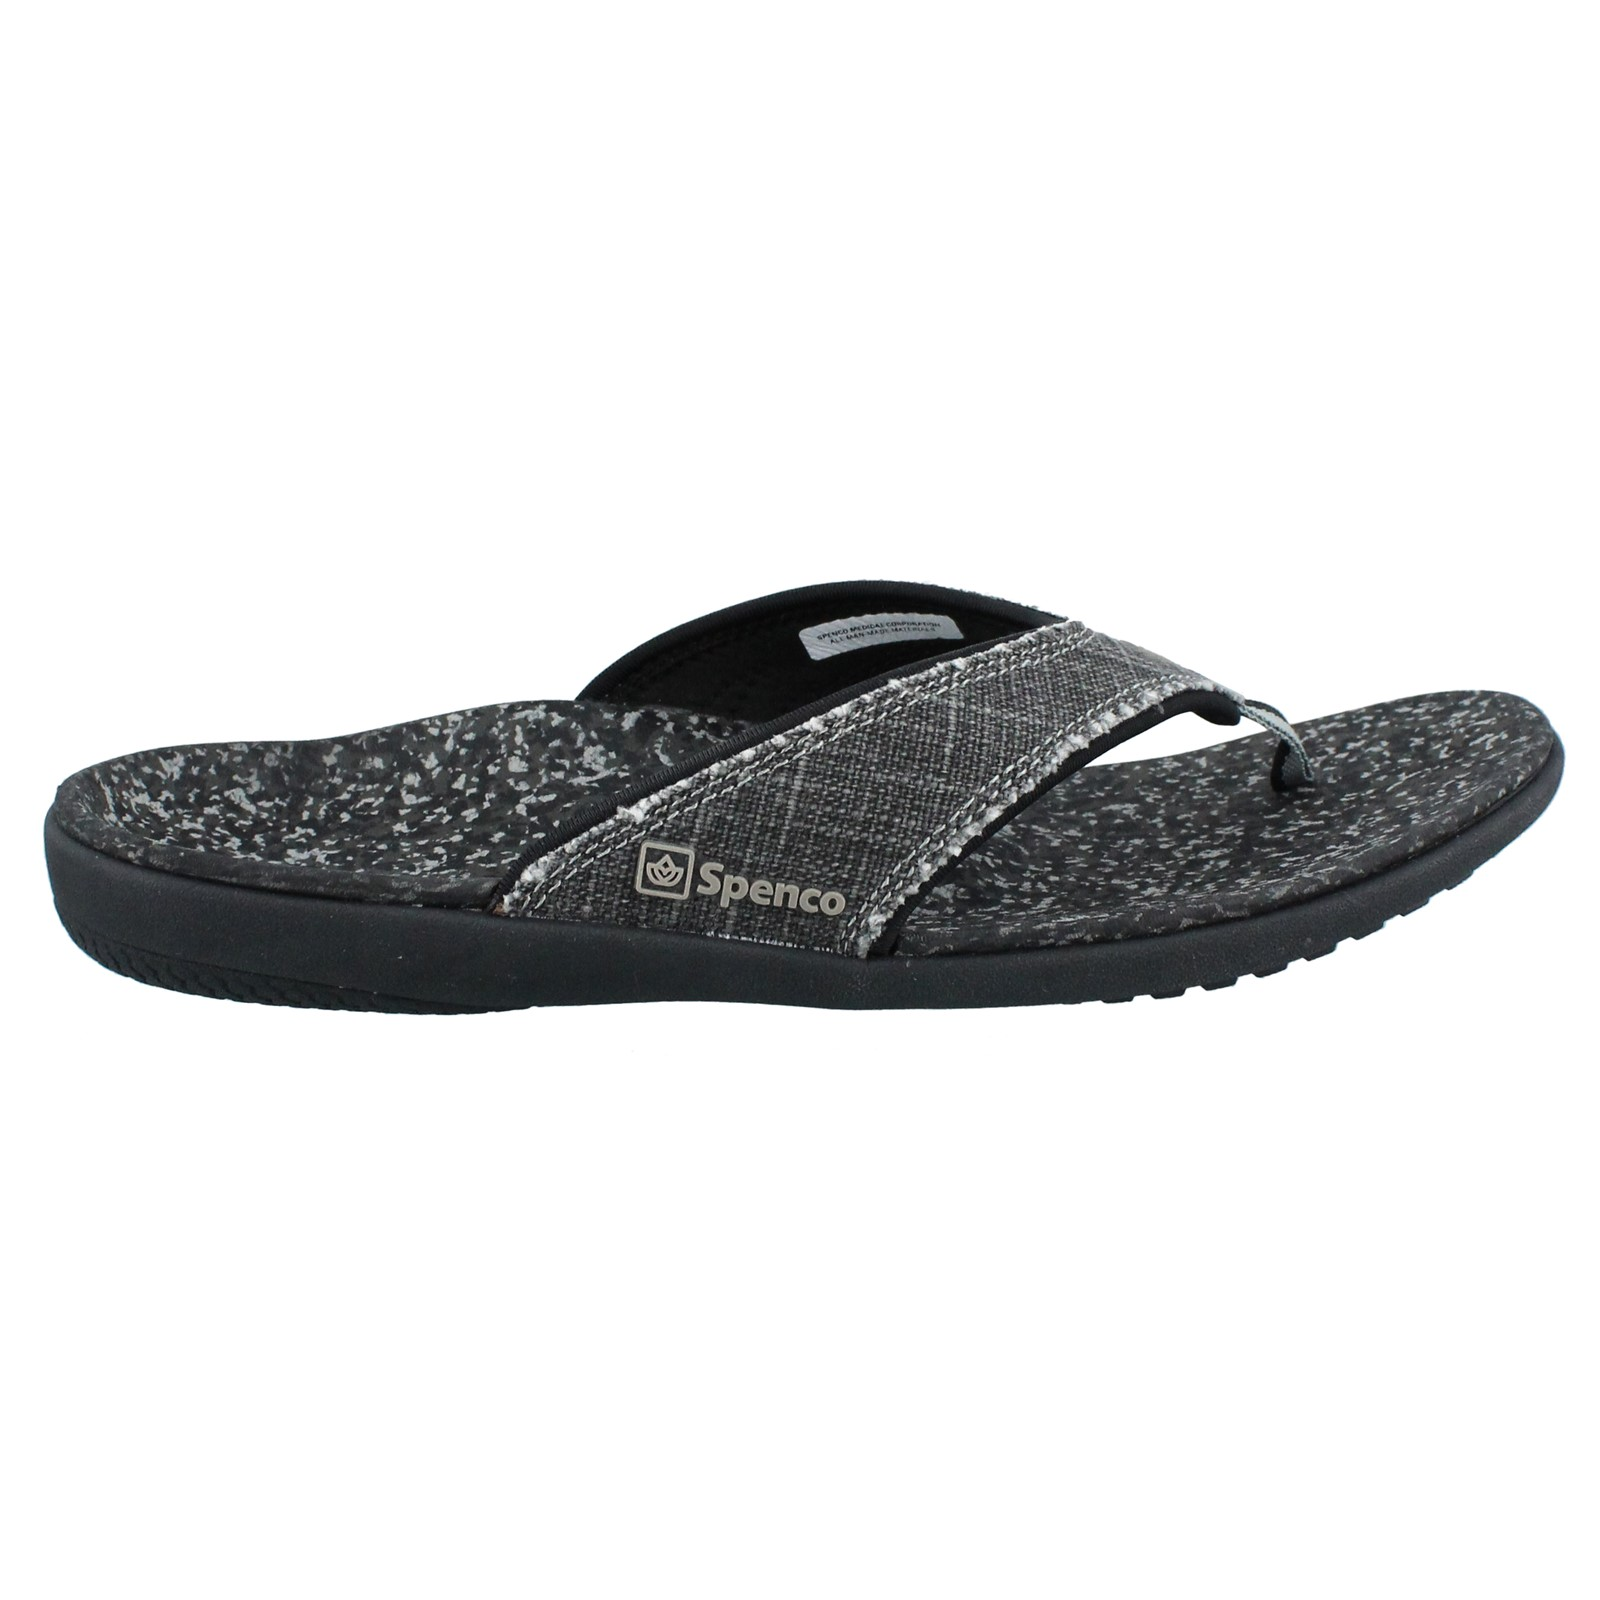 Men's Spenco, Yumi canvas Thong Sandals